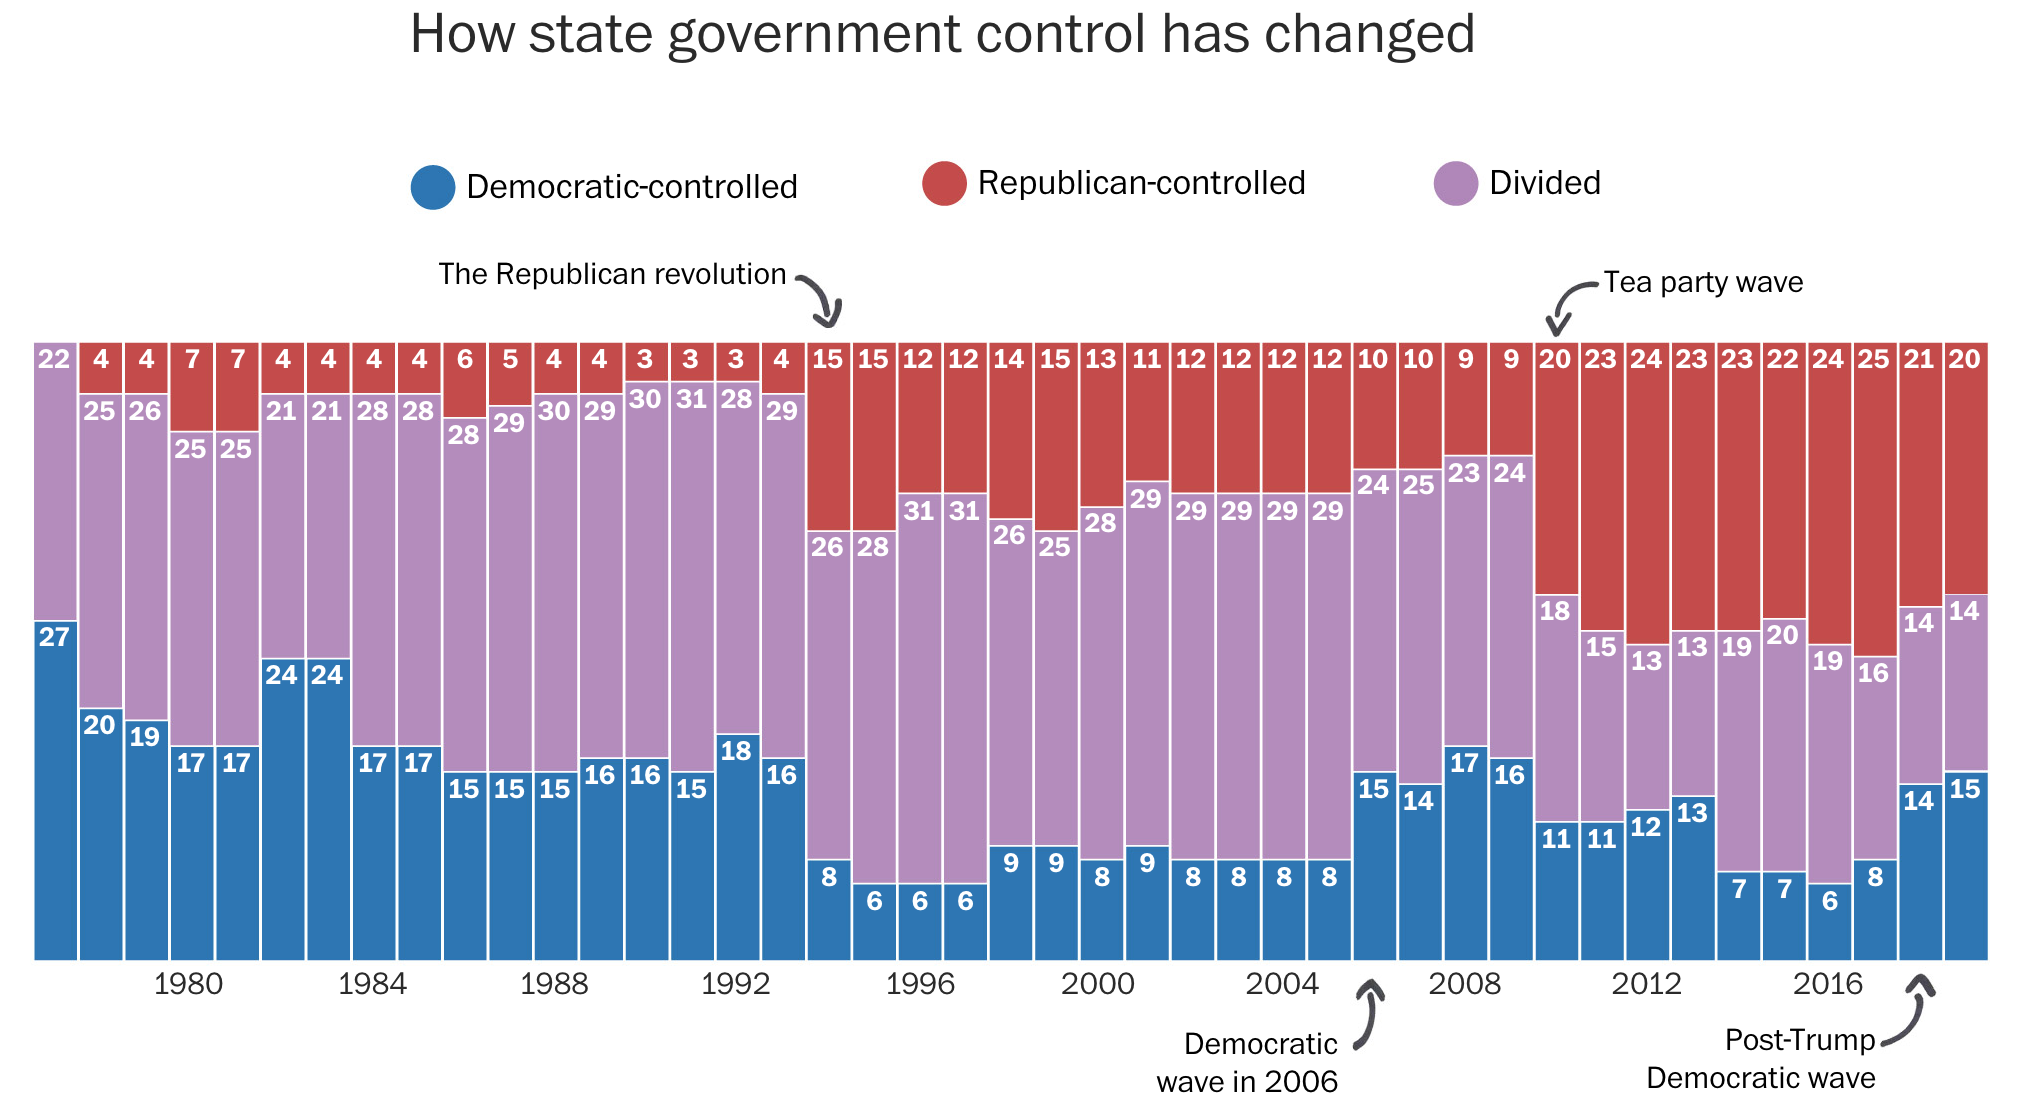 You can pretty easily spot the recent political eras by the big shifts in power.